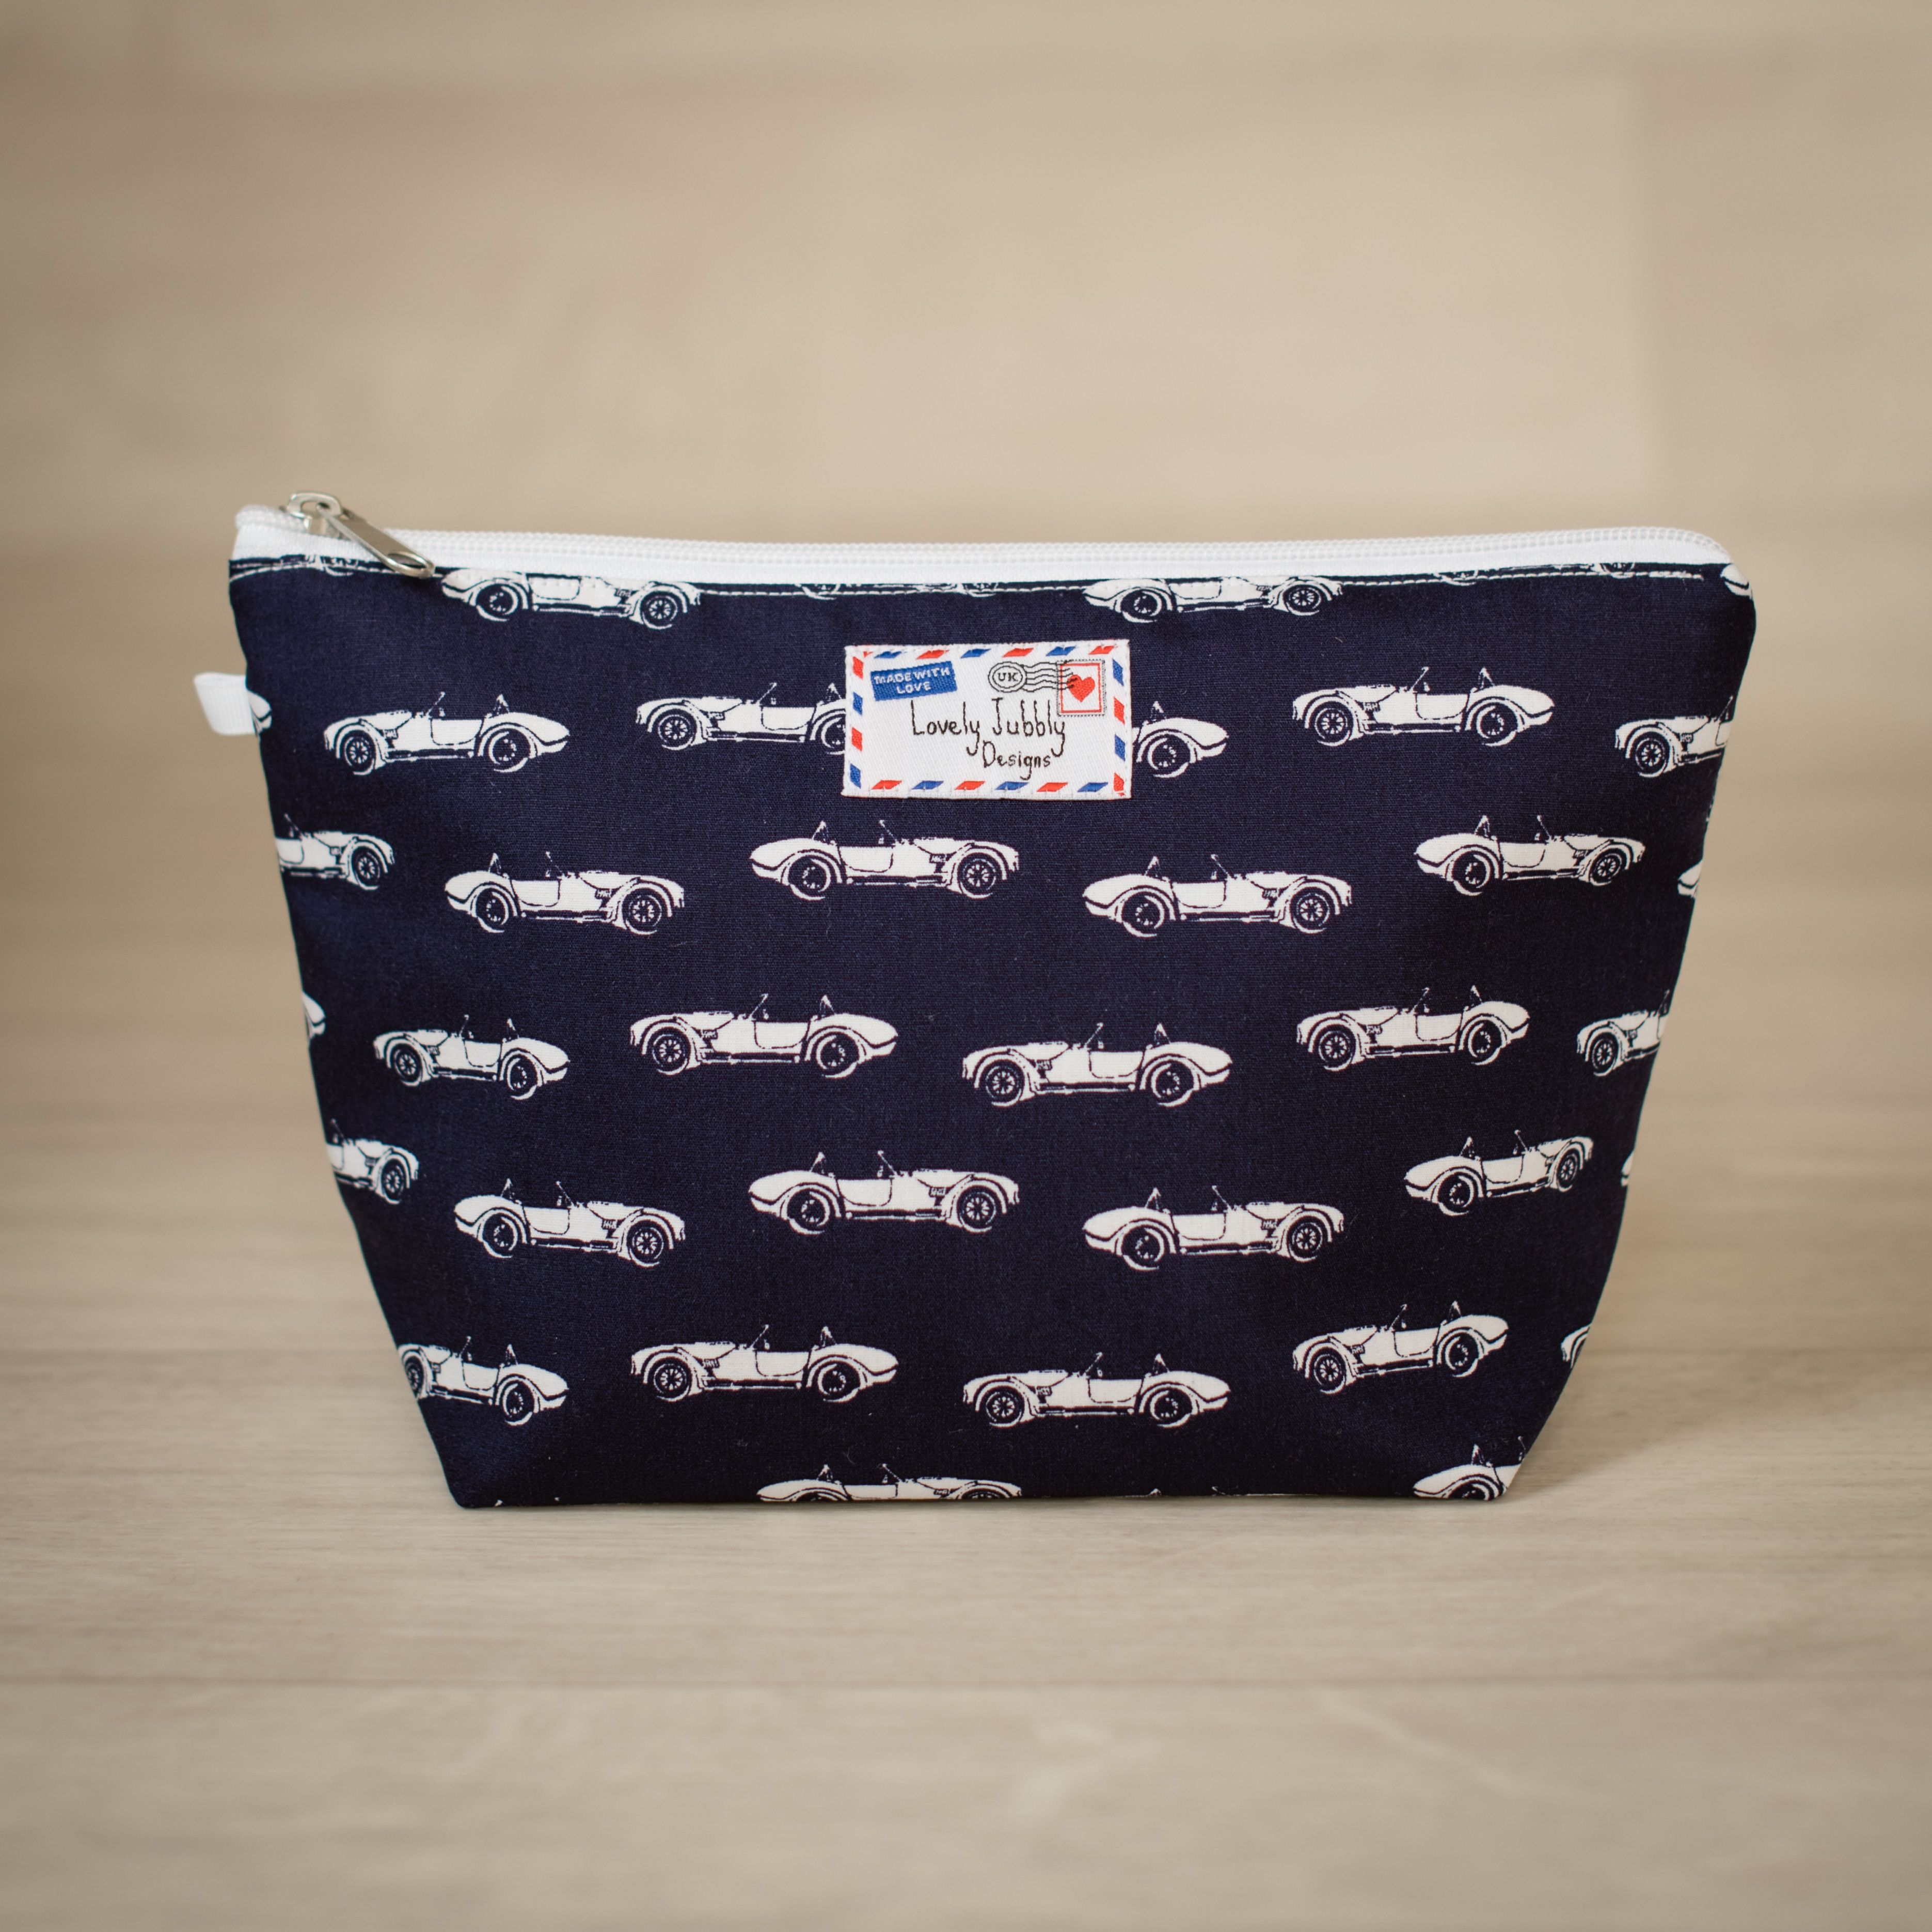 Classic Car Sports Cars Gift Toiletry Makeup Wash Bag